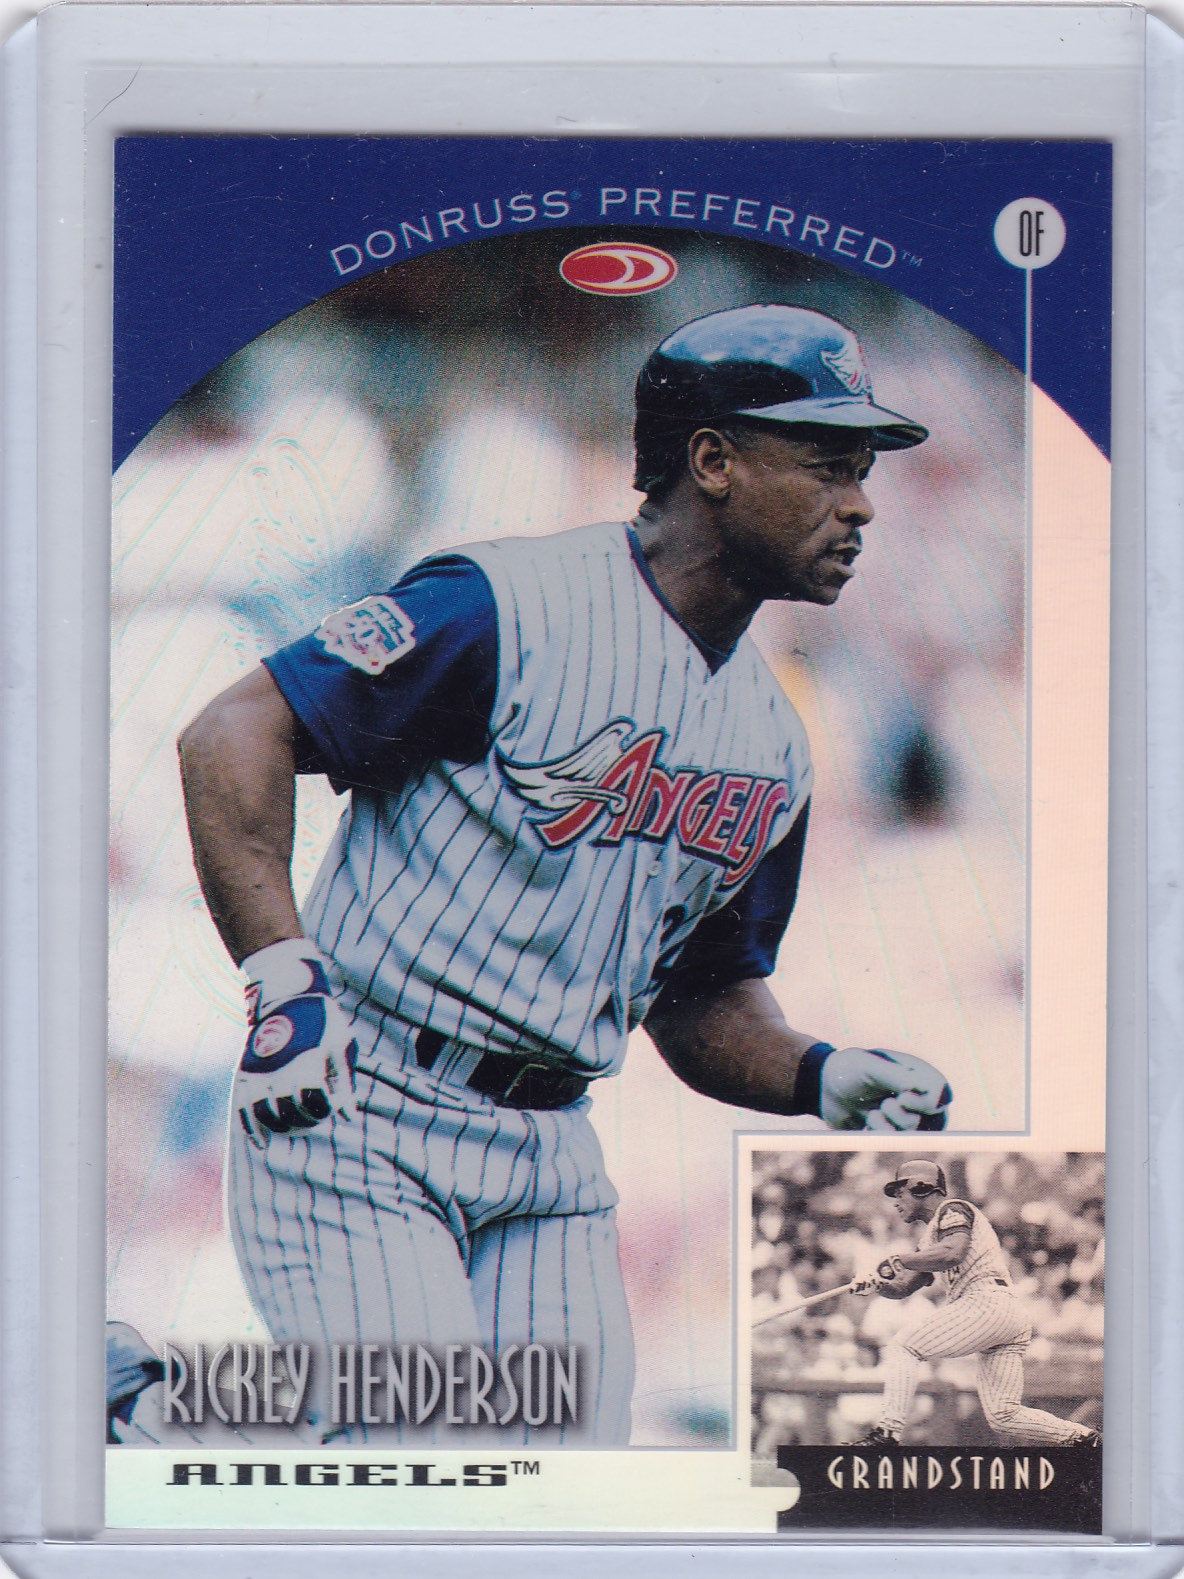 1998 Donruss Collections Preferred Prized Rickey Henderson